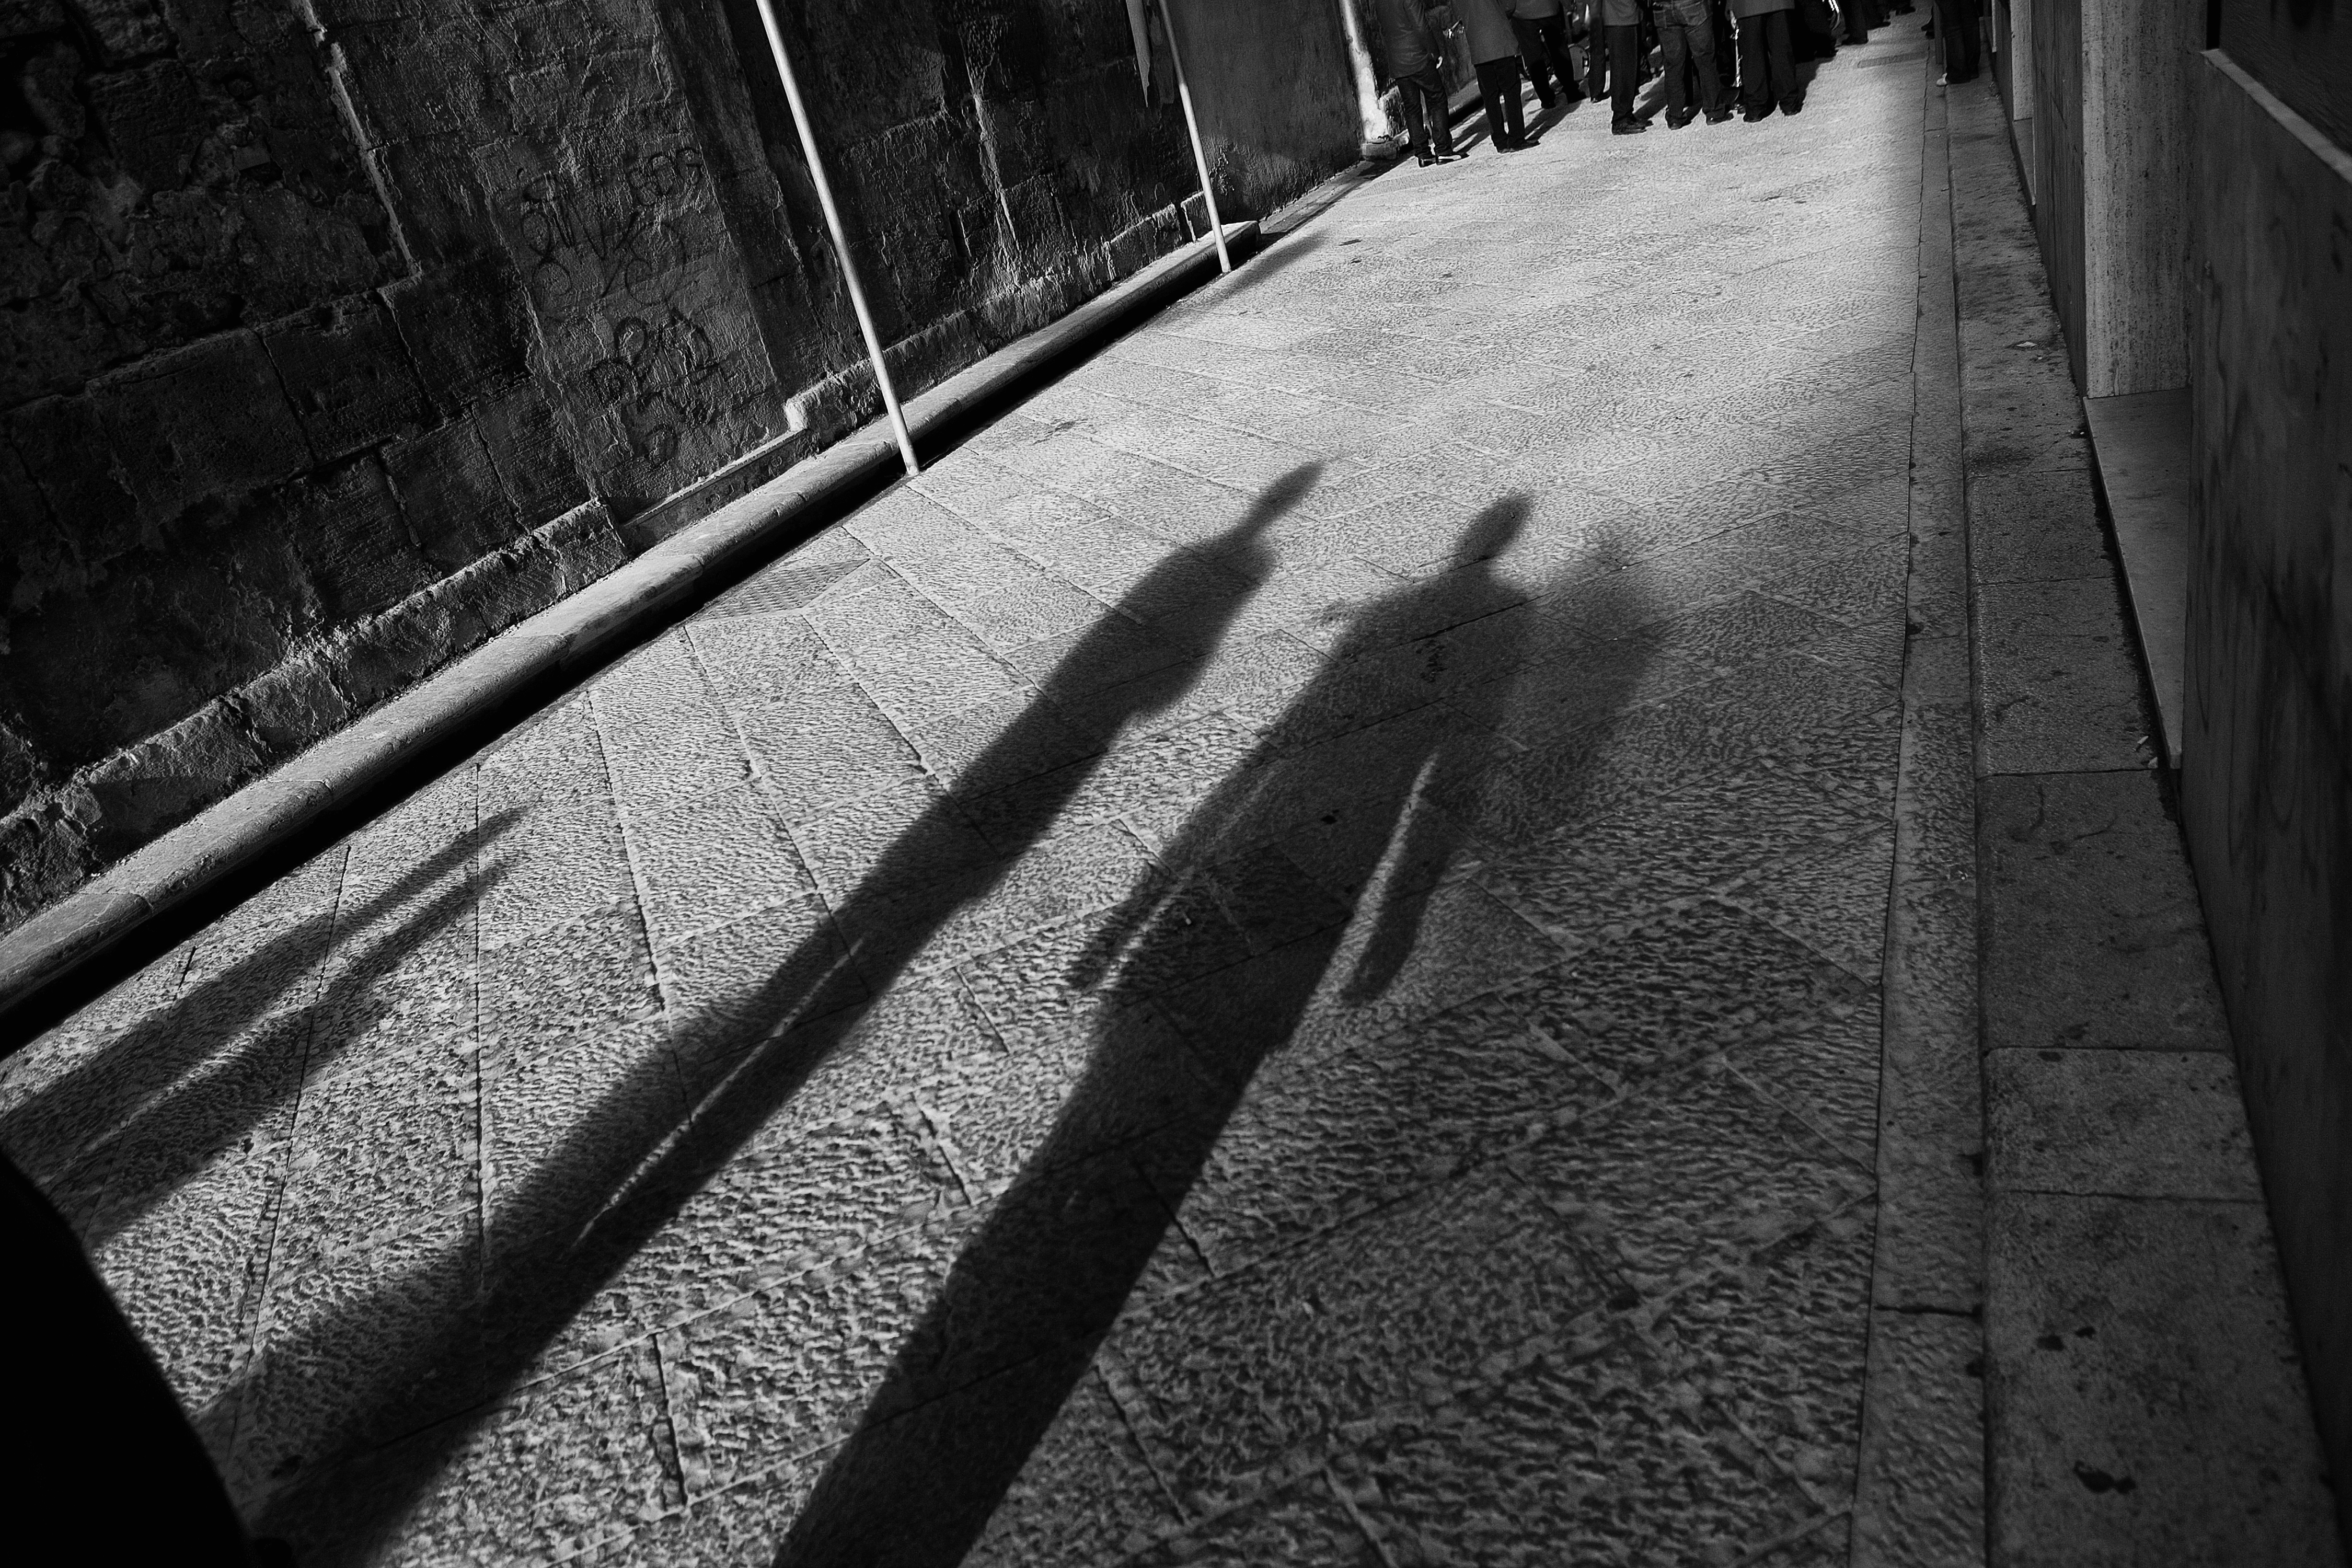 Shadows of the Band, Black, Bogaert, Form, Italy, HQ Photo